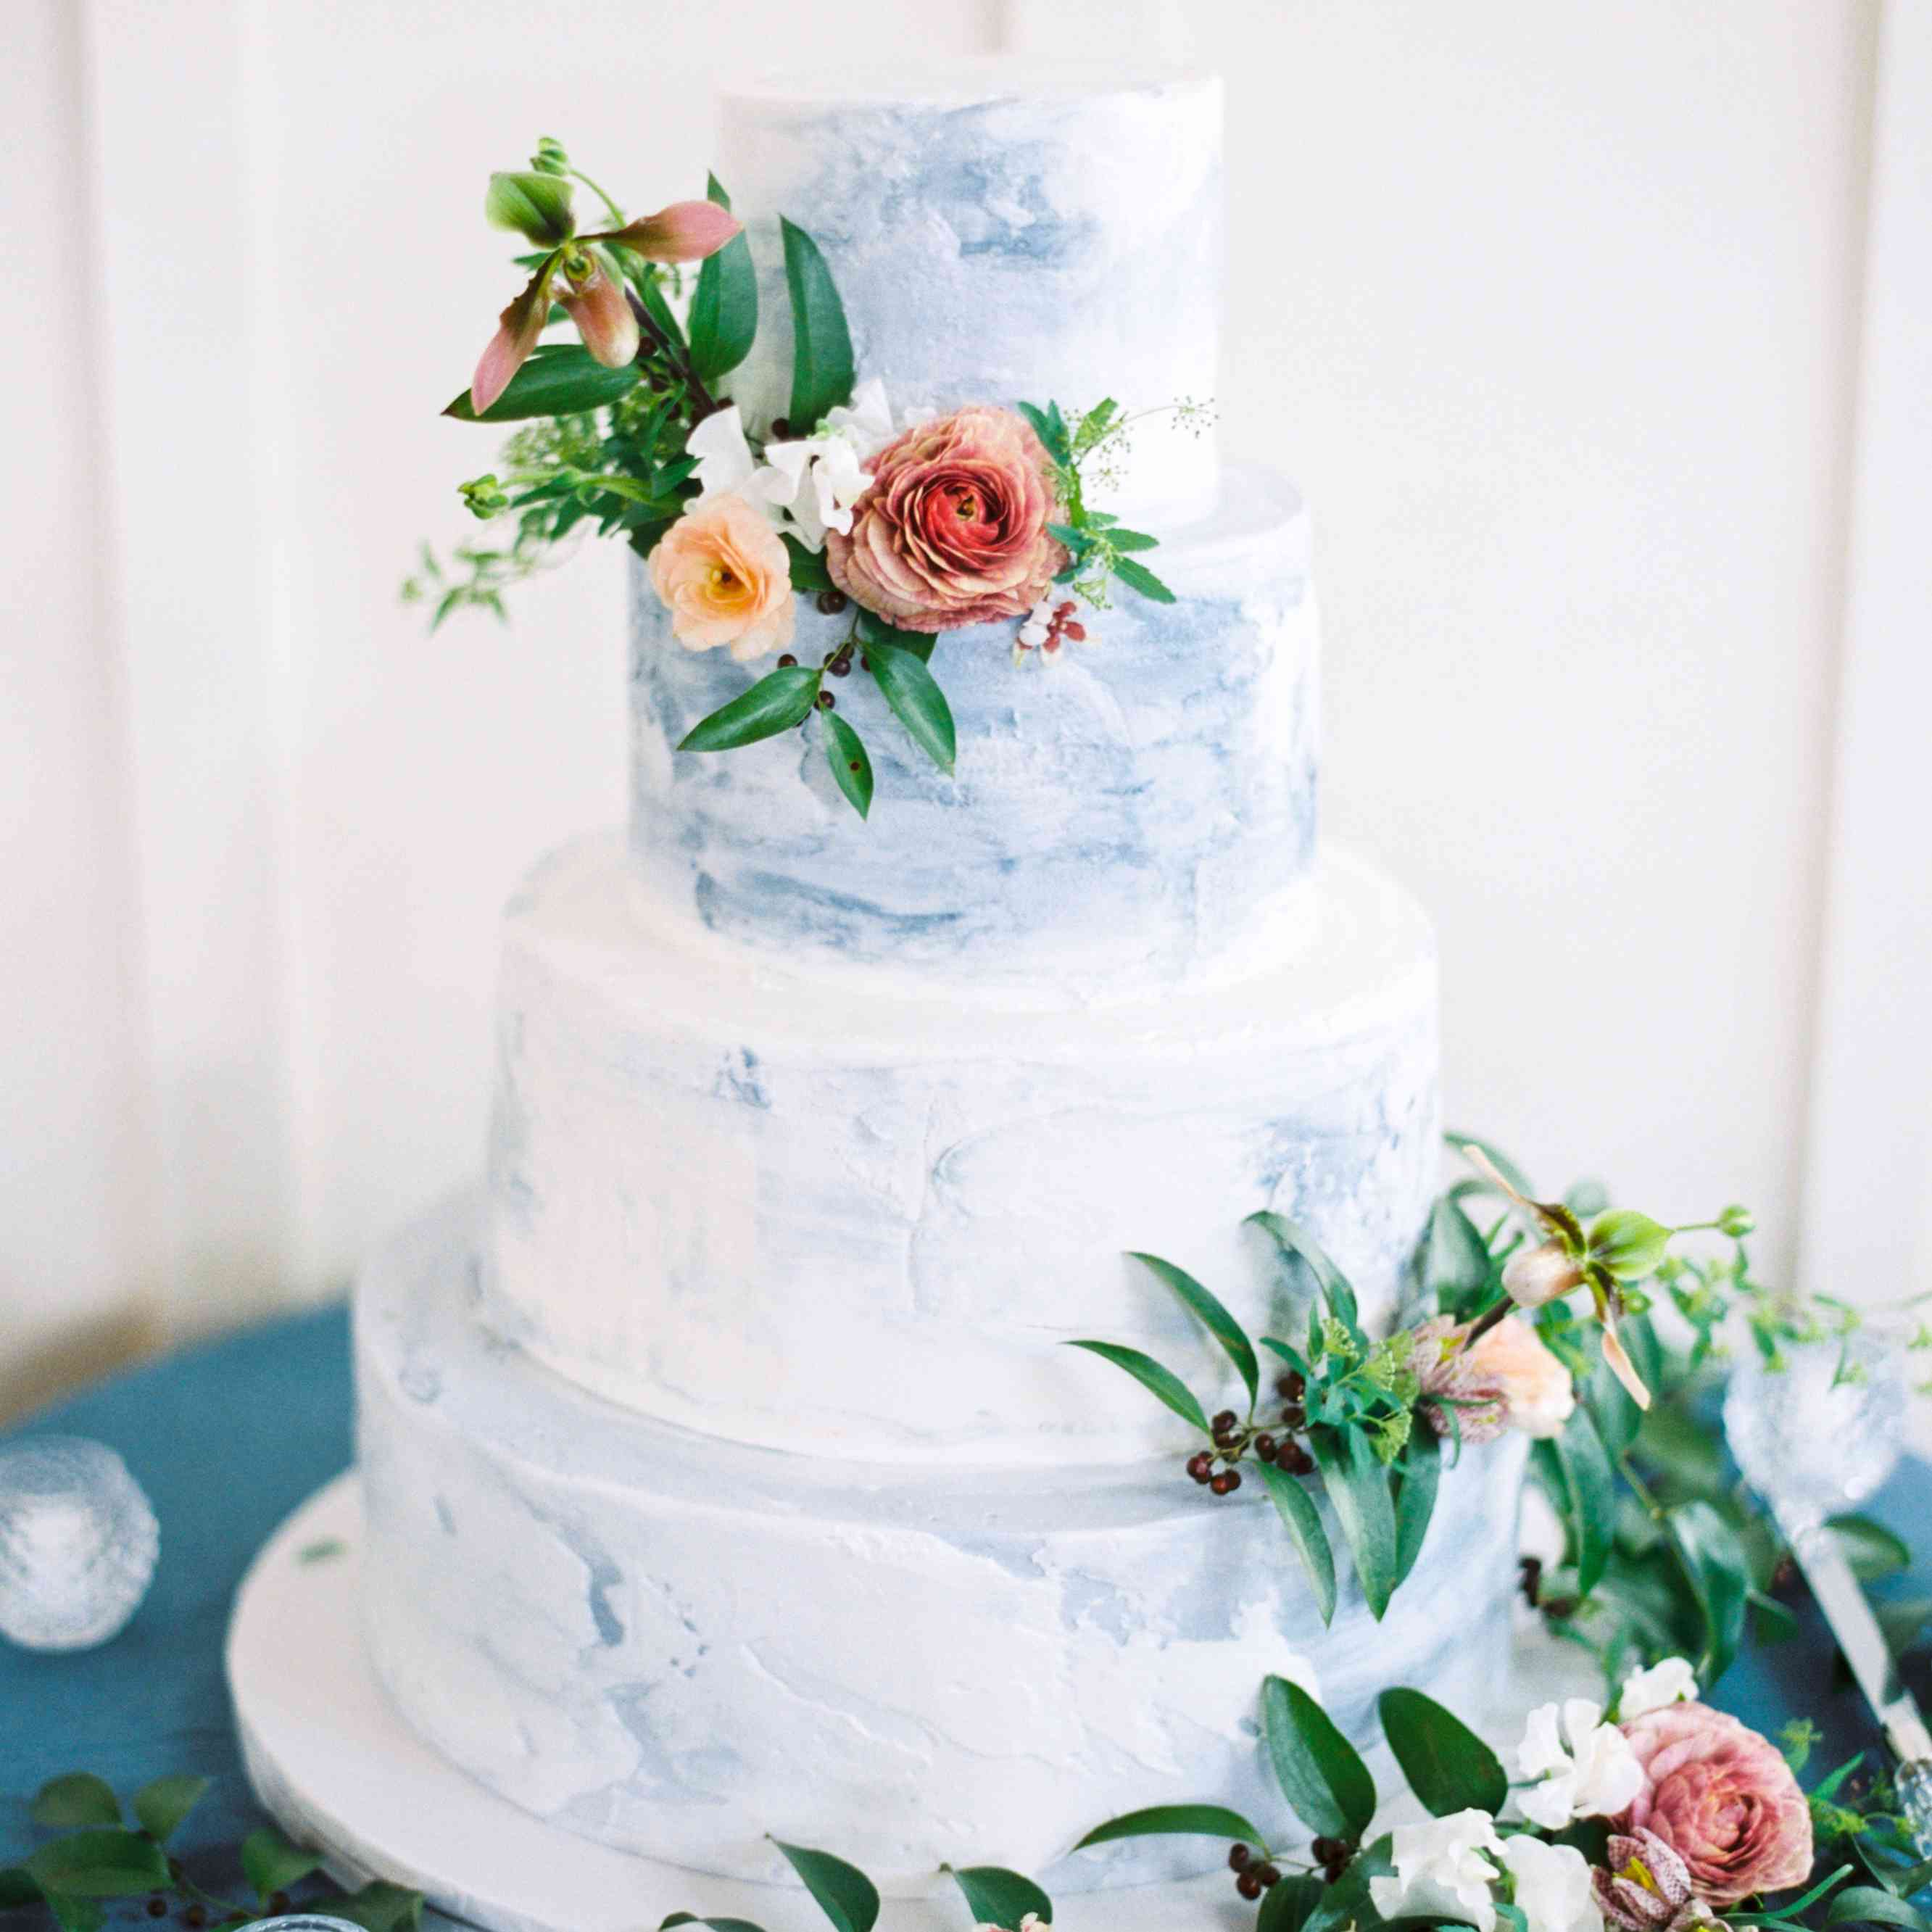 24 Colorful Wedding Cakes That Are Almost Too Pretty To Eat